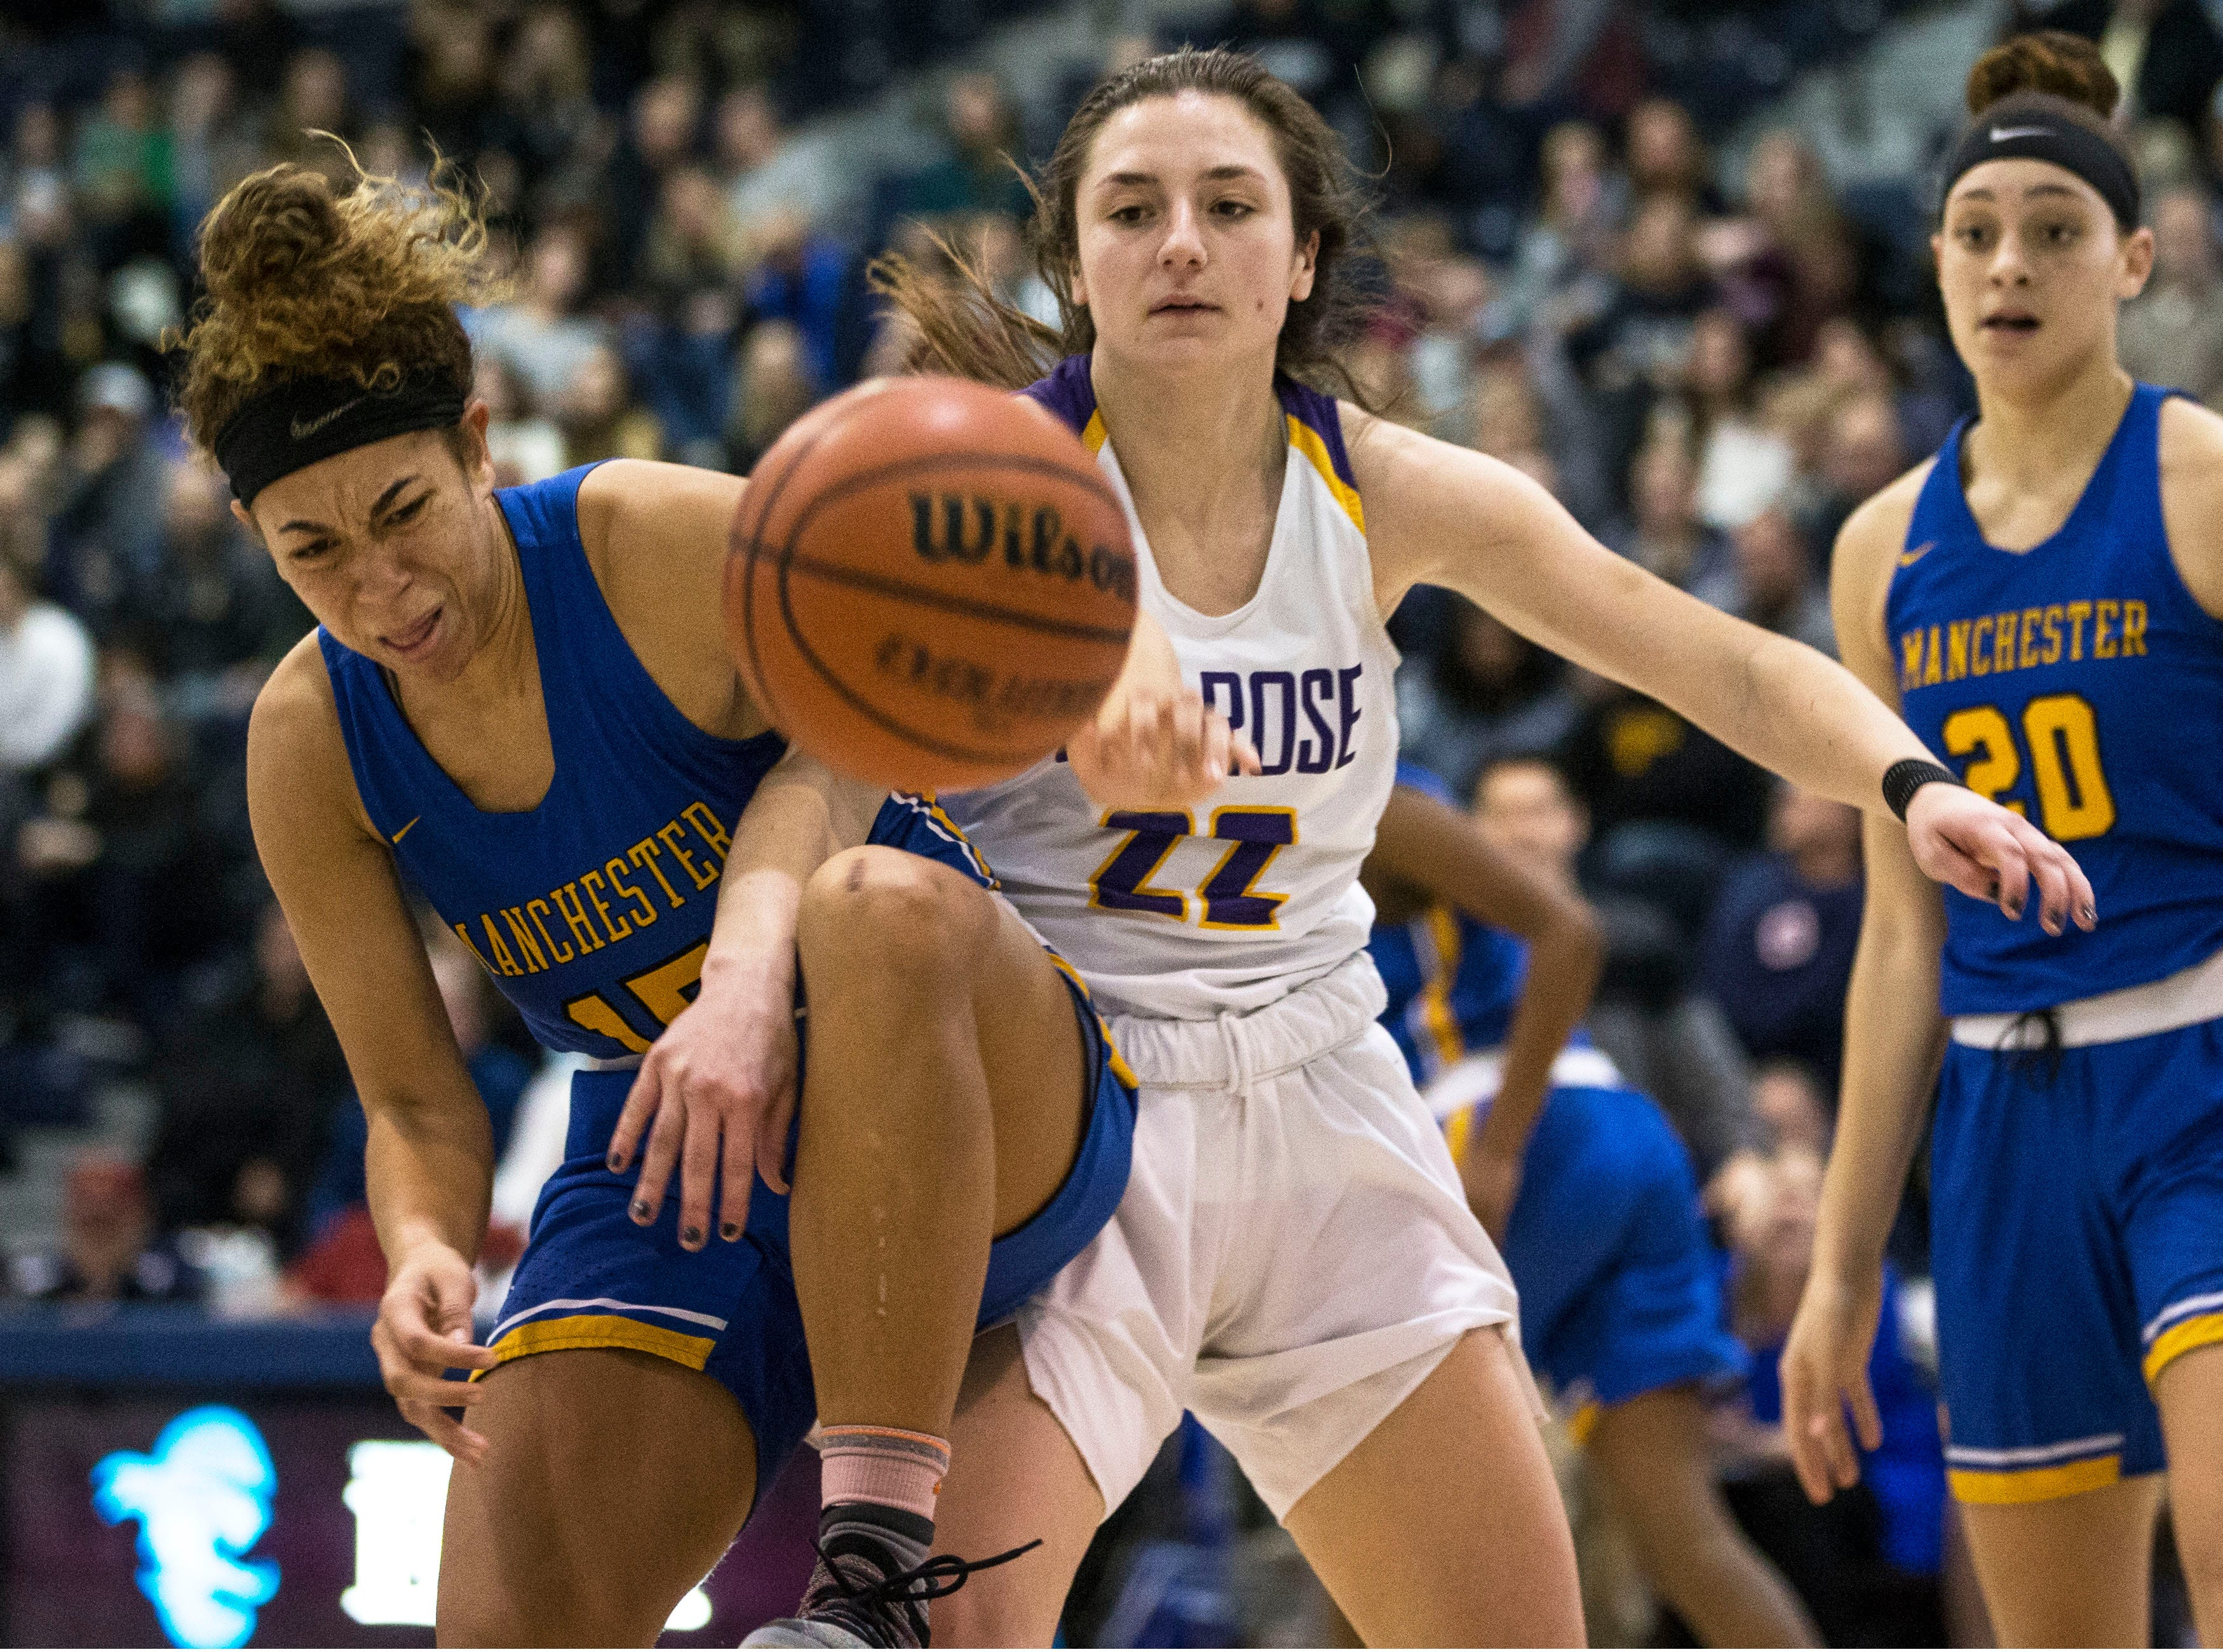 Shore Conference Tournament semifinals featuring St. Rose vs Manchester. Manchester's Dakota Adams and St. Rose's Brynn Farrell battle for a rebound. Toms River, NJTuesday, February 19, 2019